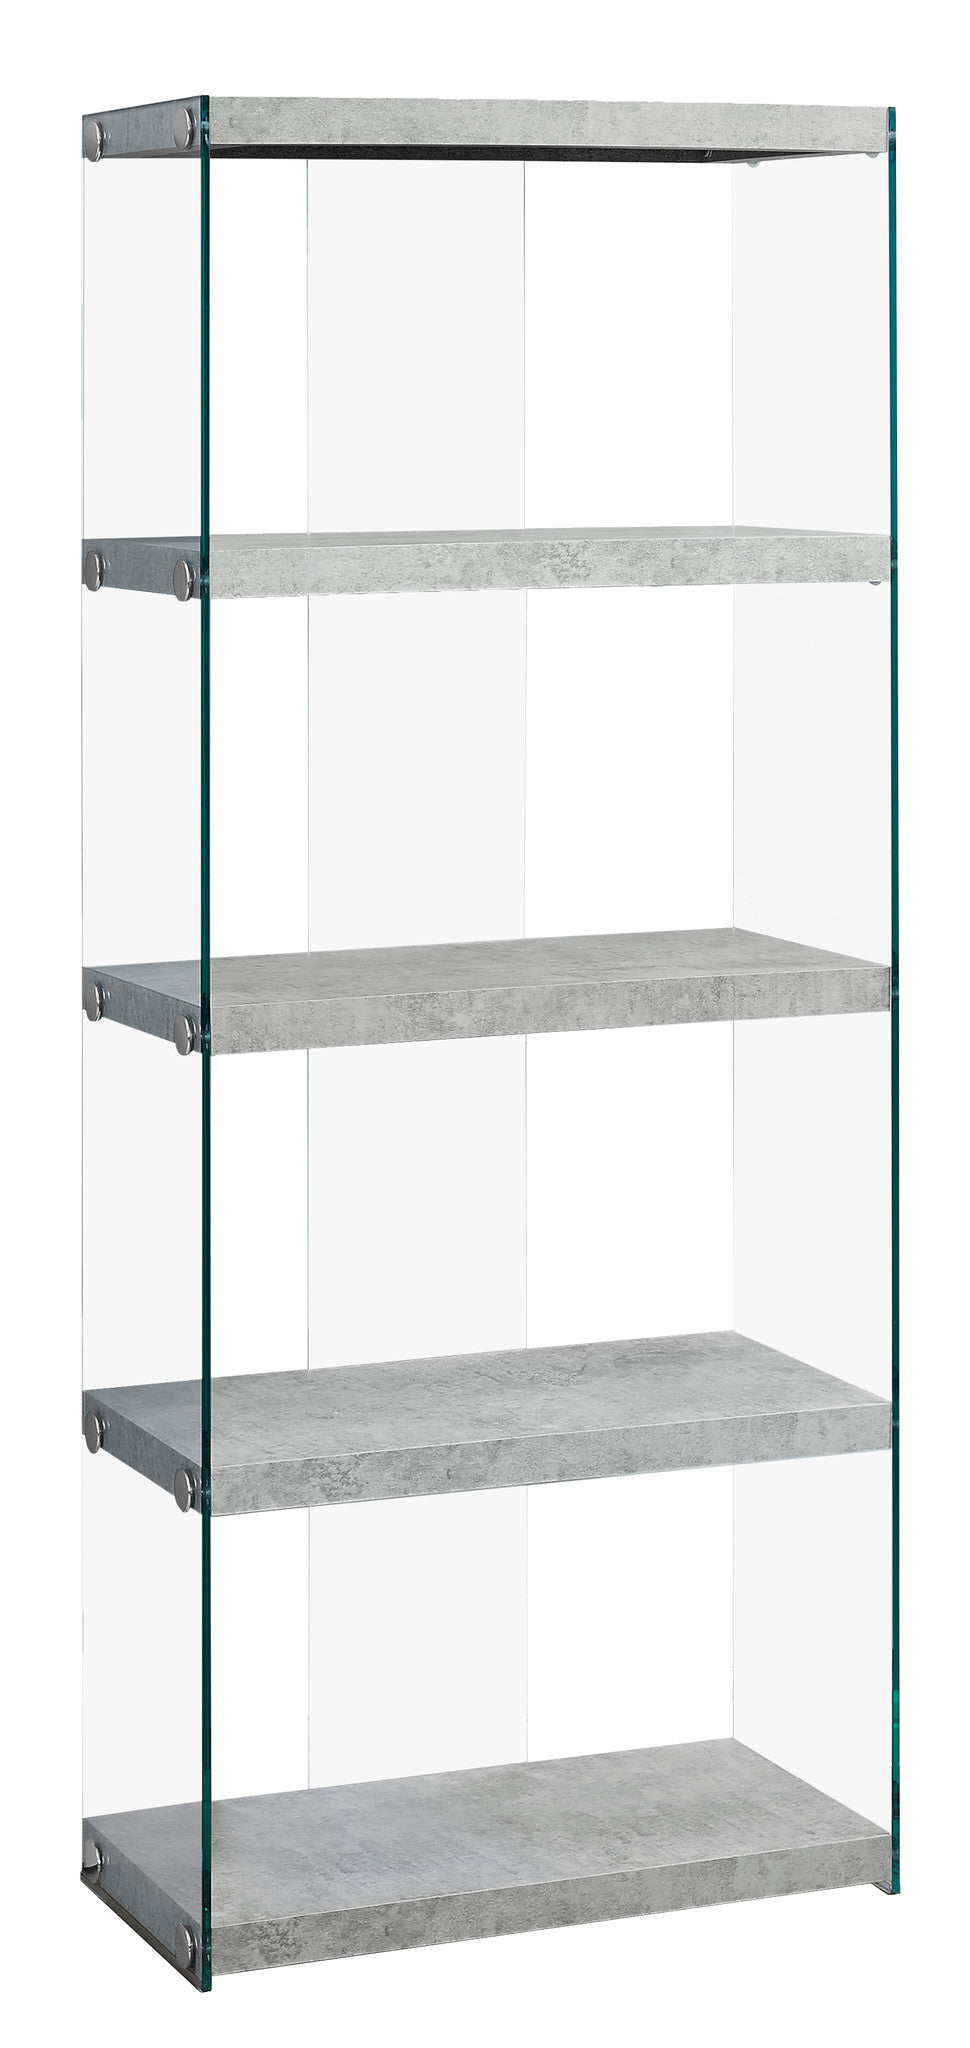 "60""H Cement Grey Bookcase with Tempered Glass by Monarch Specialties Inc. - White Background -TheOfficeFurnitureDepot"